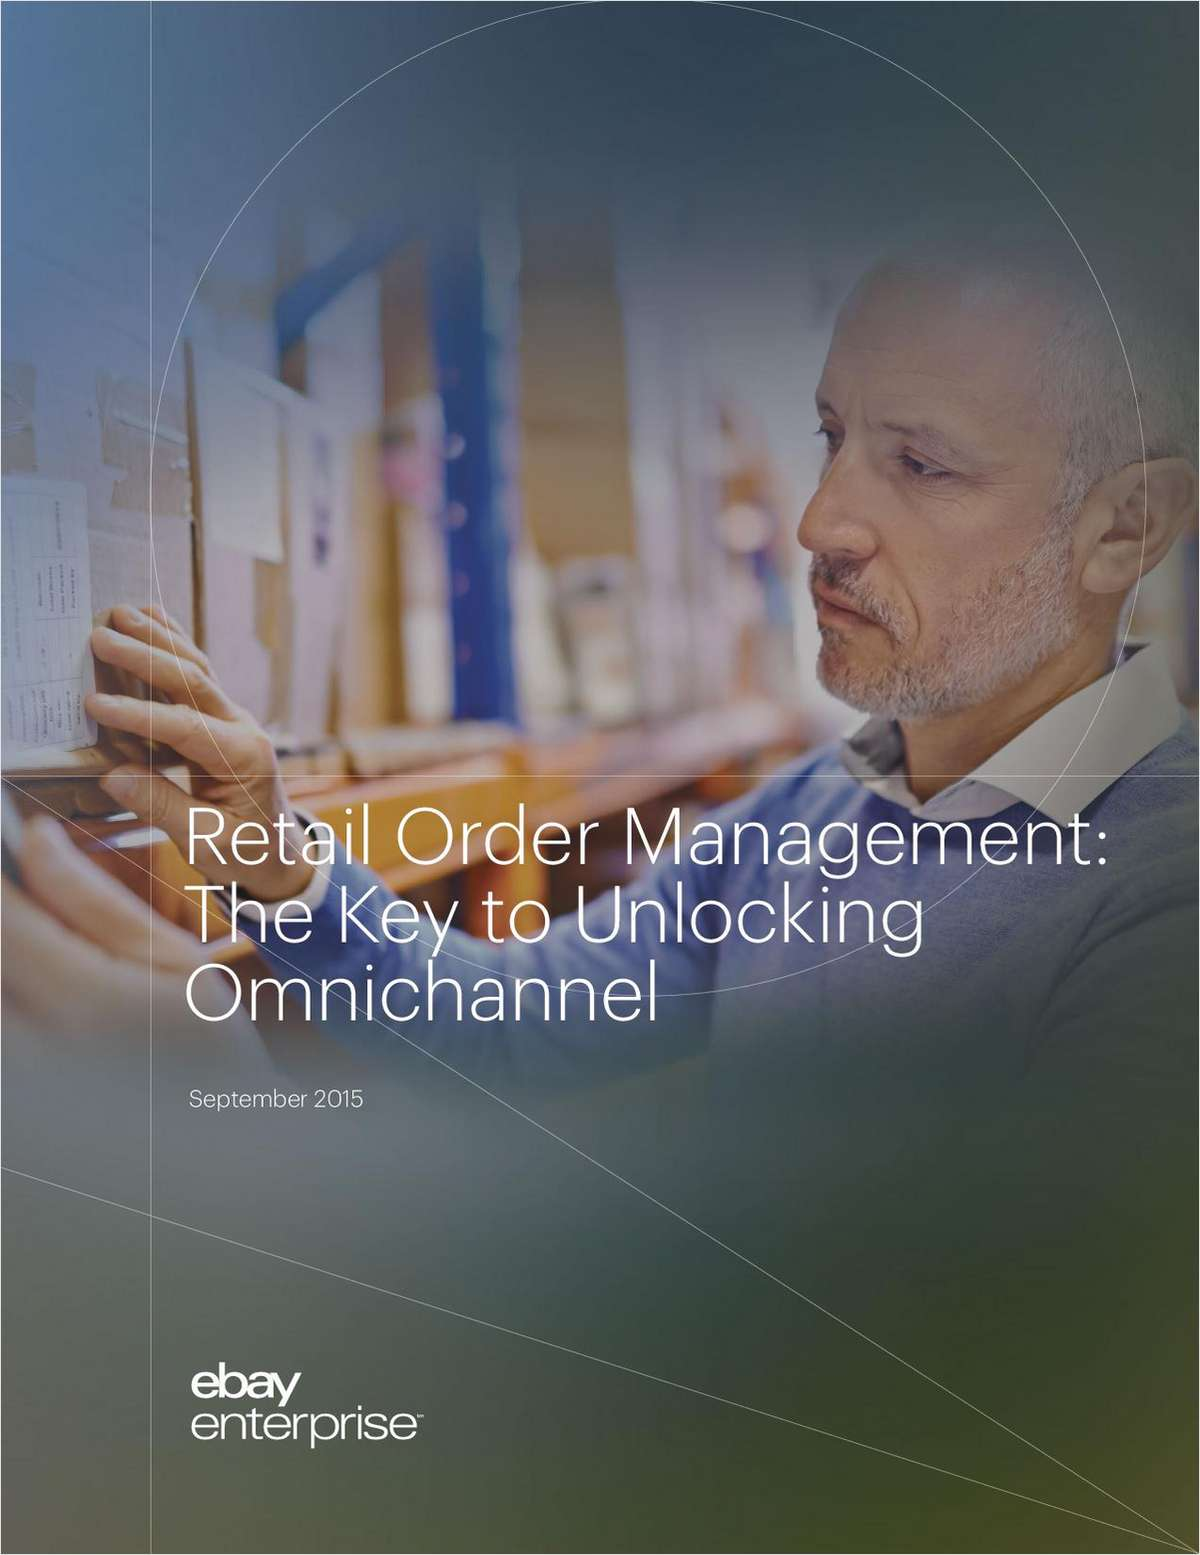 Retail Order Management: The Key to Unlocking Omnichannel